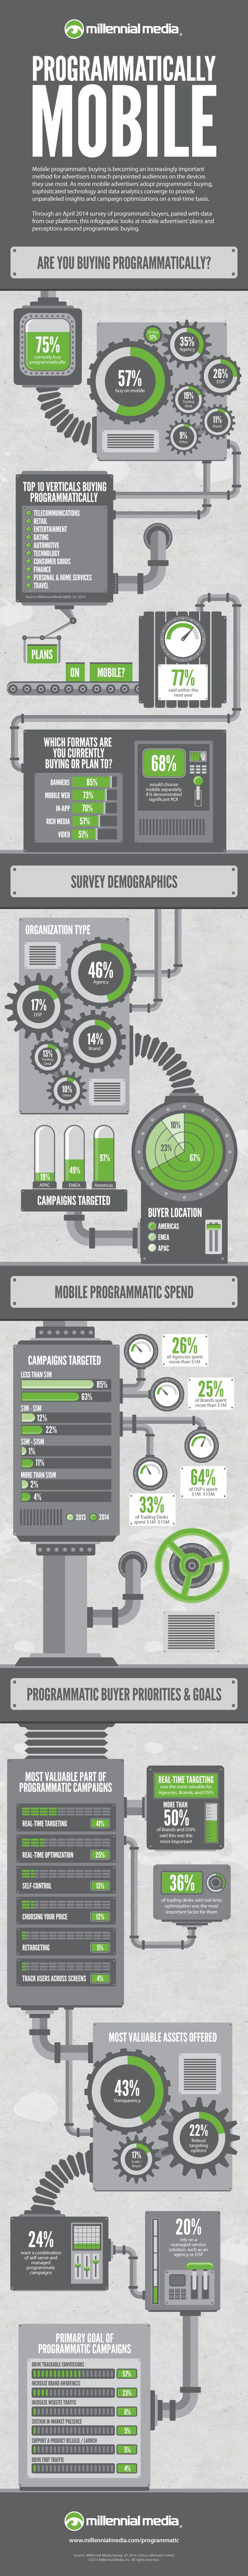 Programmatically Mobile  As more mobile advertisers adopt programmatic buying, this method of real-time optimization to reach audiences is becoming a valuable part of any campaign.